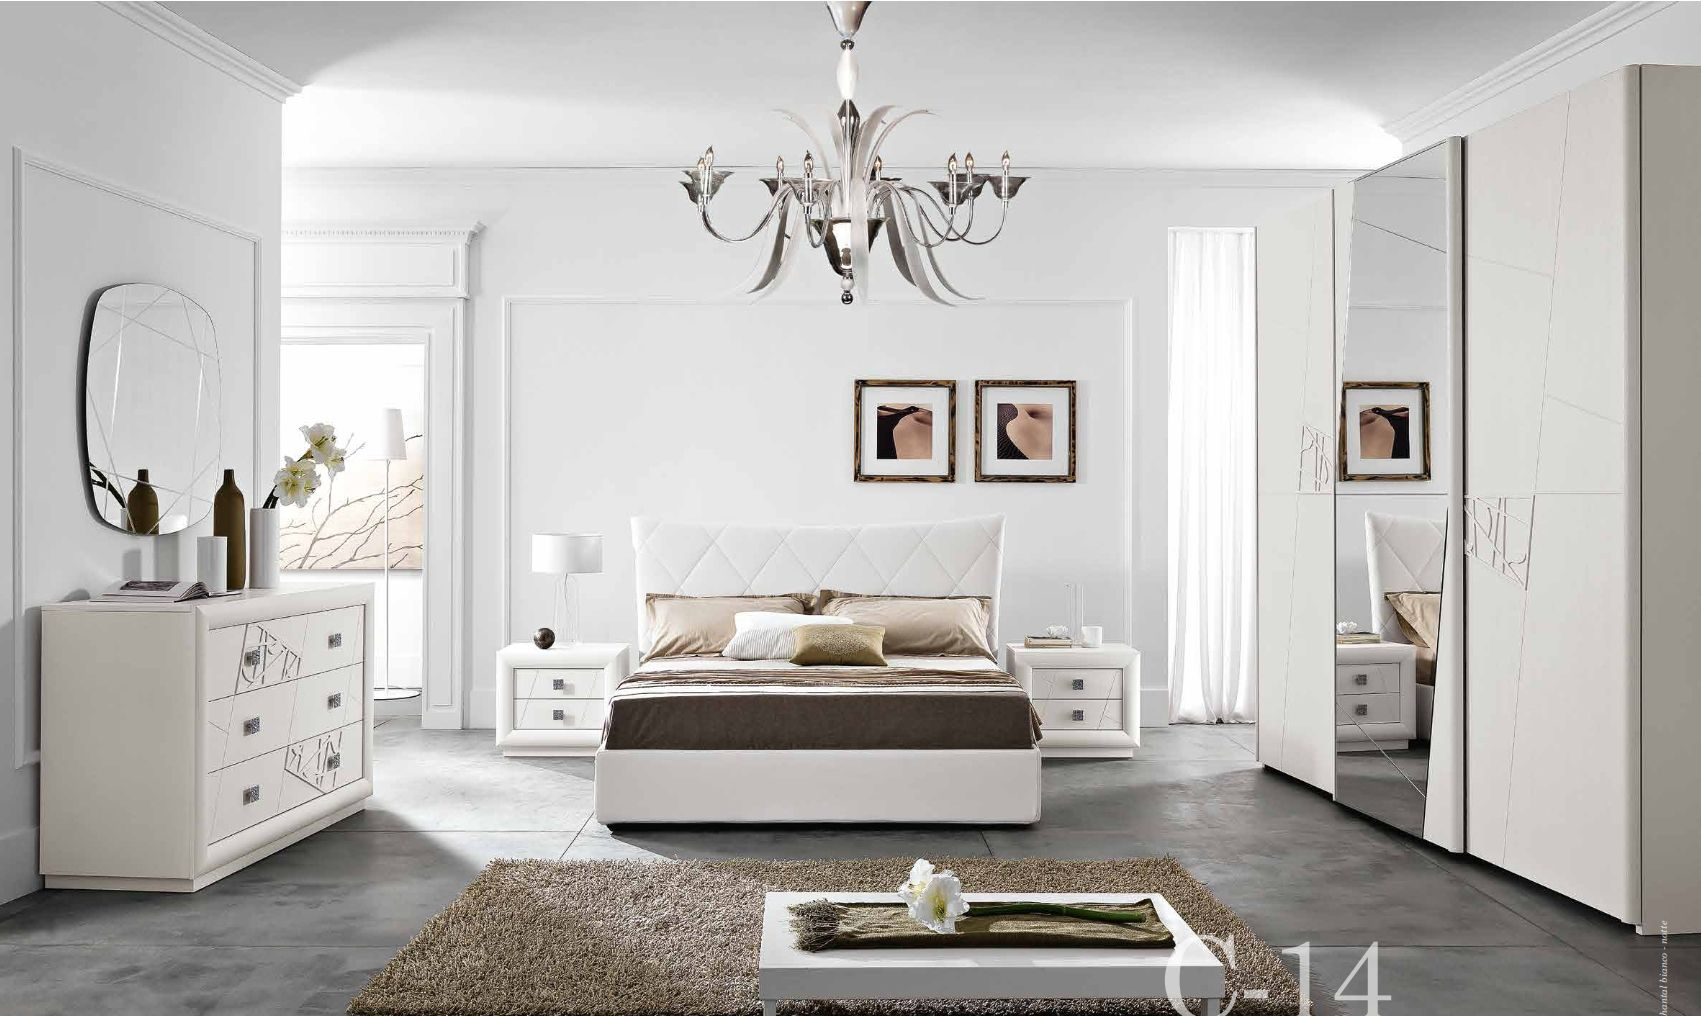 klassische m bel schlafzimmer komposition mit chantal mobilpiu serie 14die m bel aus italien. Black Bedroom Furniture Sets. Home Design Ideas